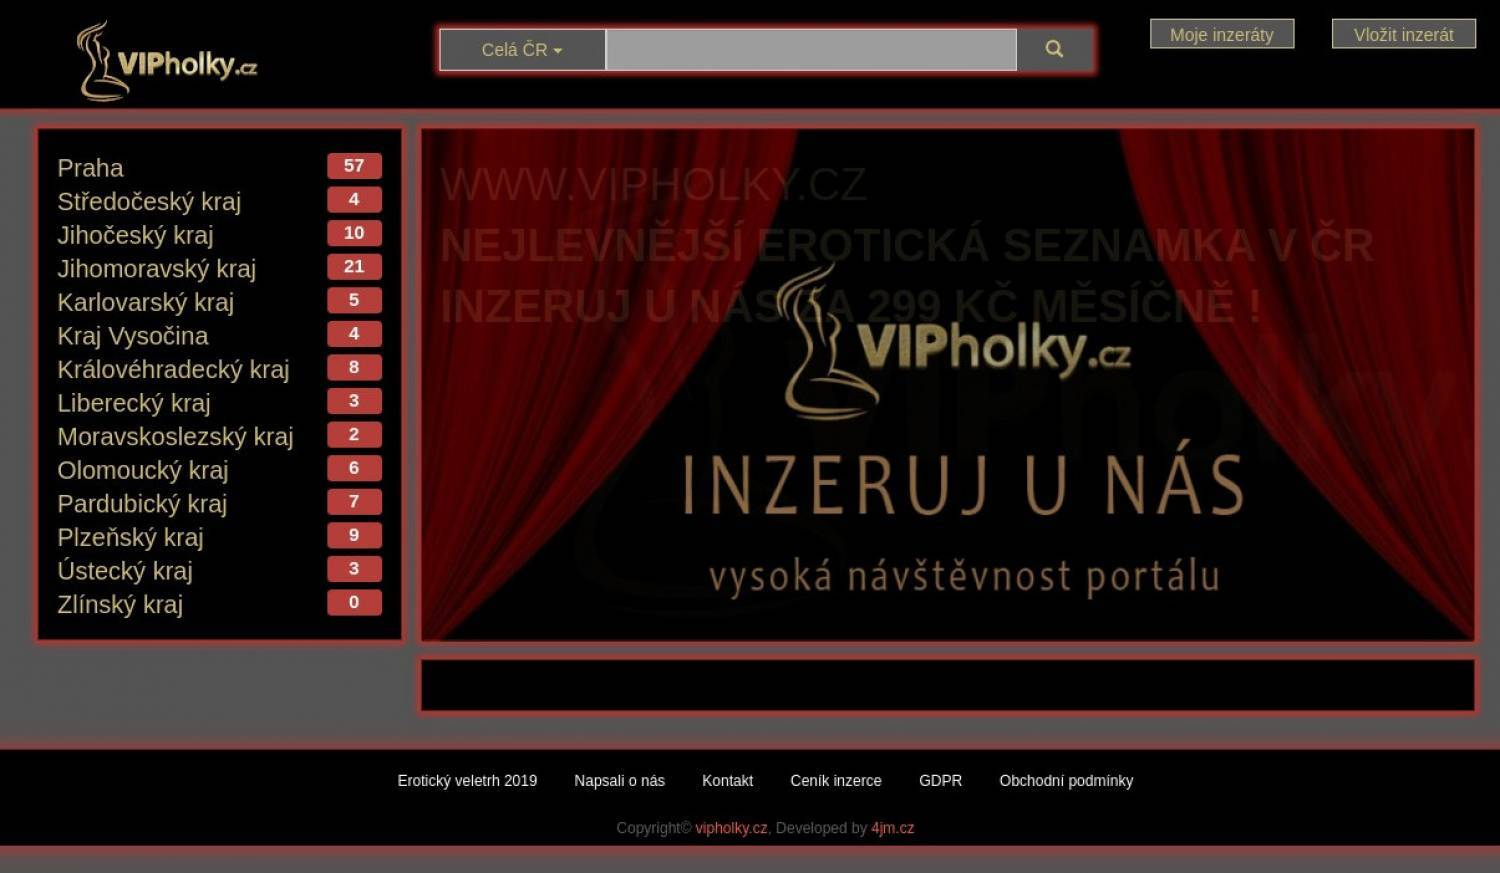 VIP holky